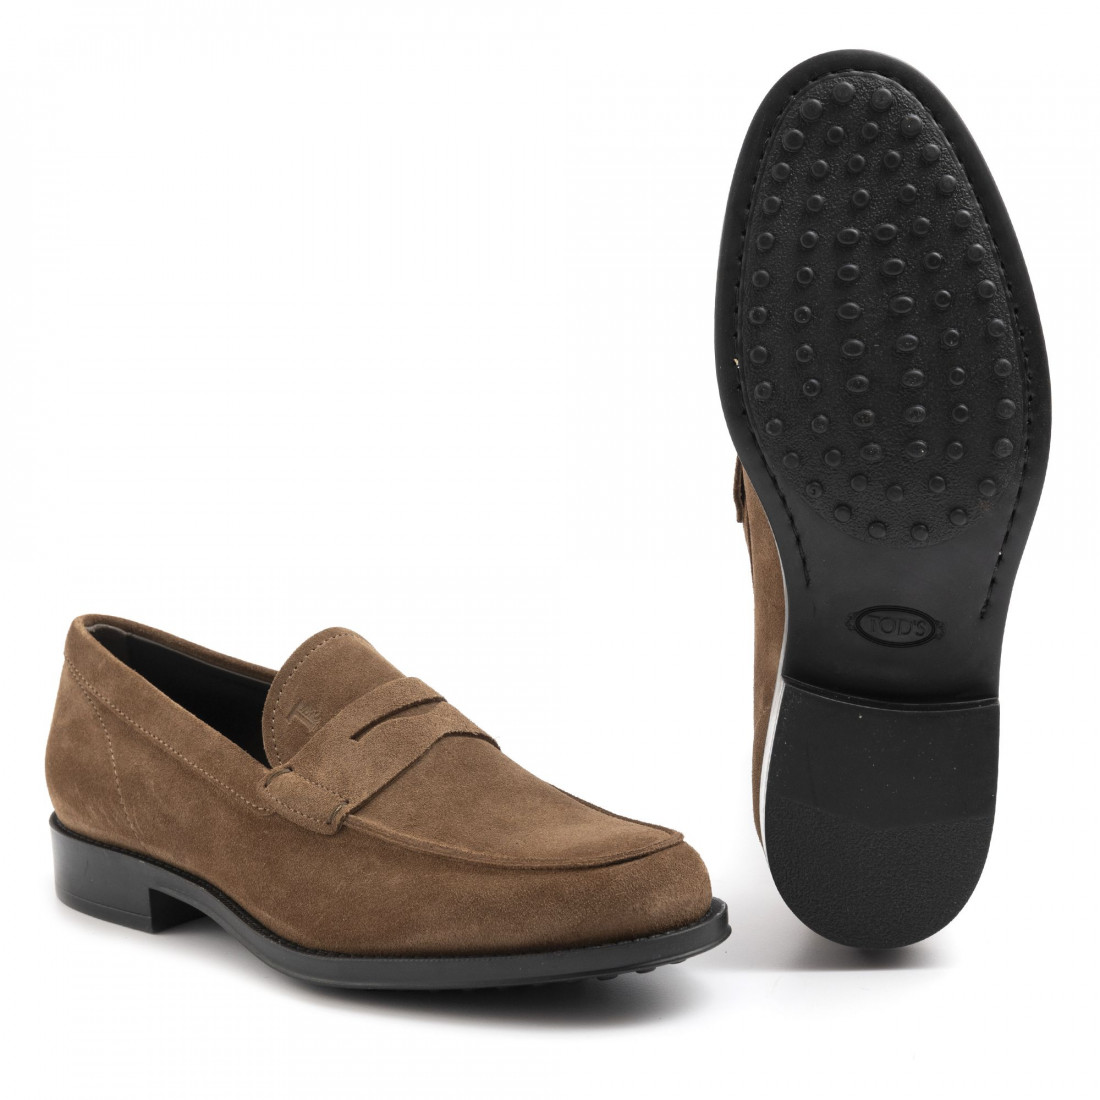 loafers man tods xxm0ud00640re0s818 6303